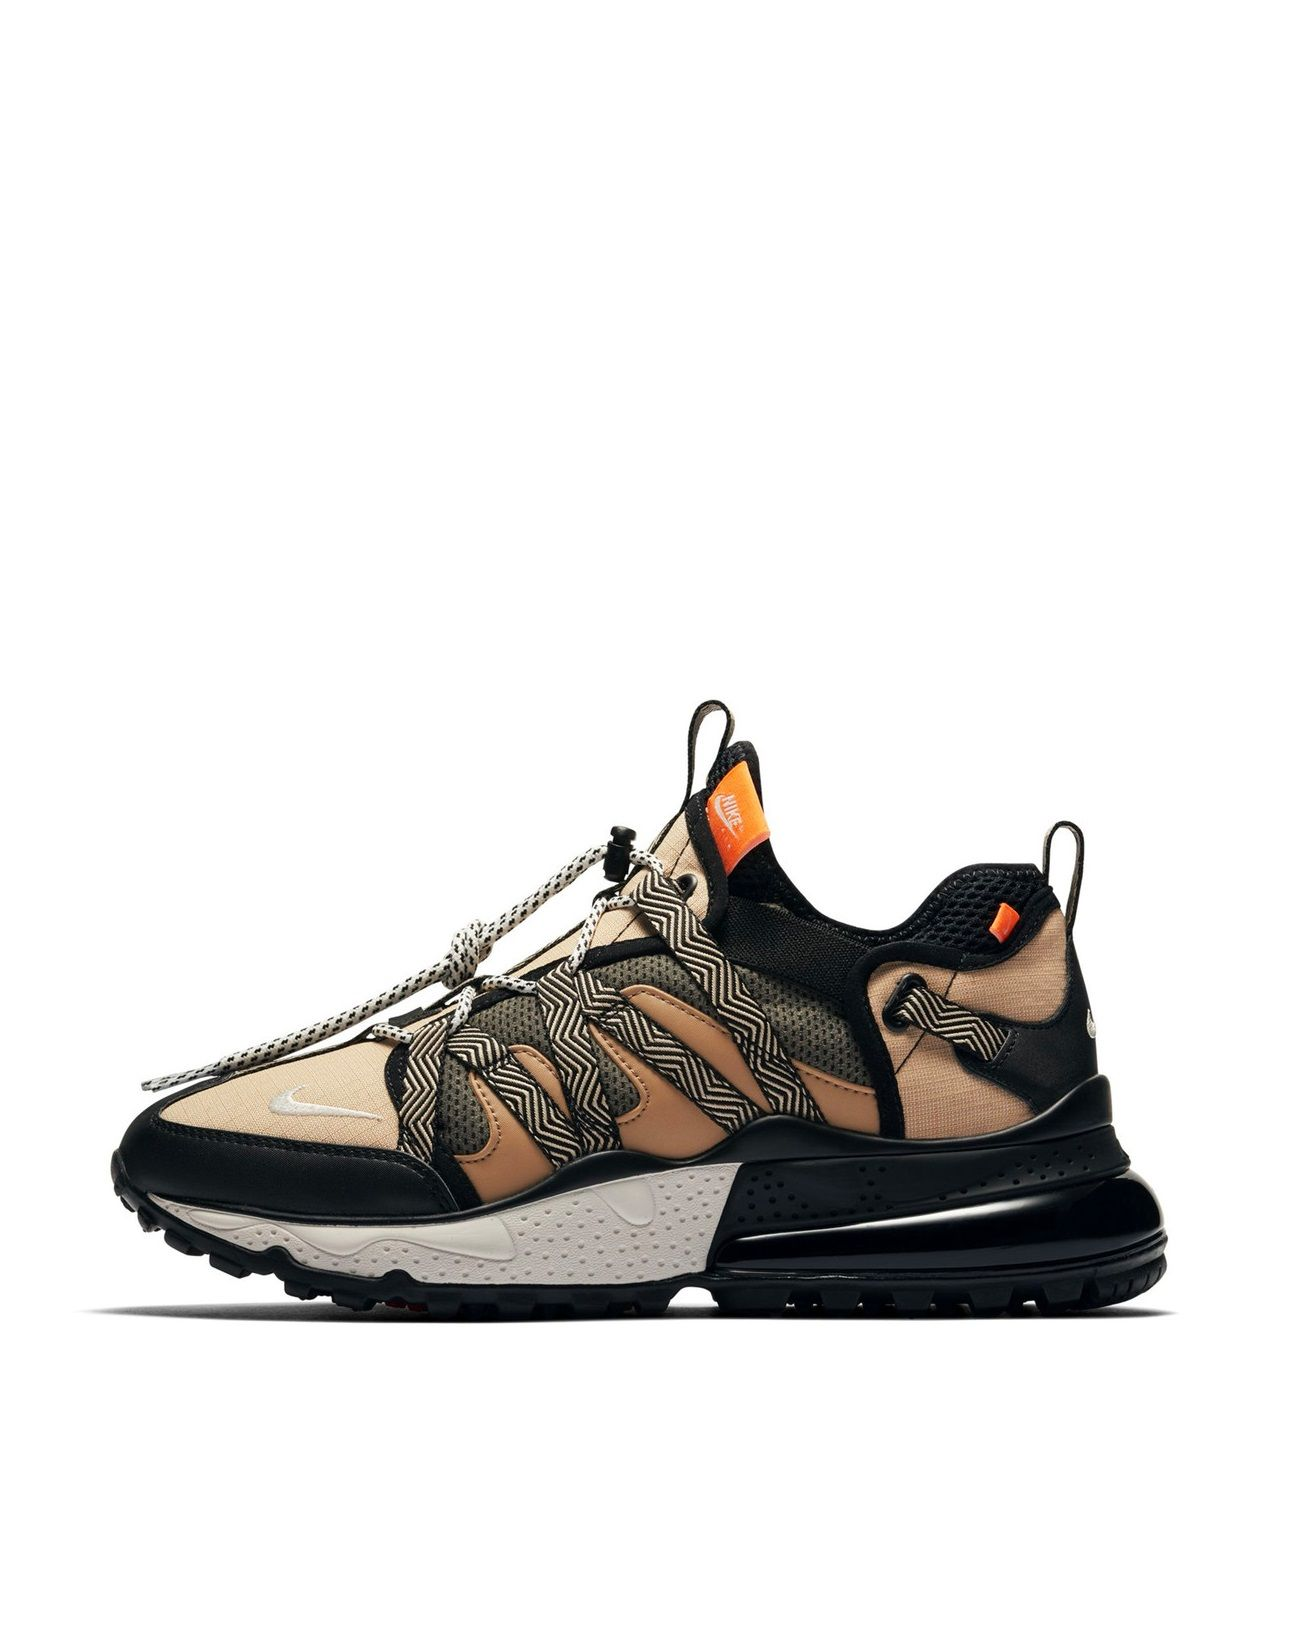 low cost cb9b6 3062a Nike Air Max 270 Bowfin